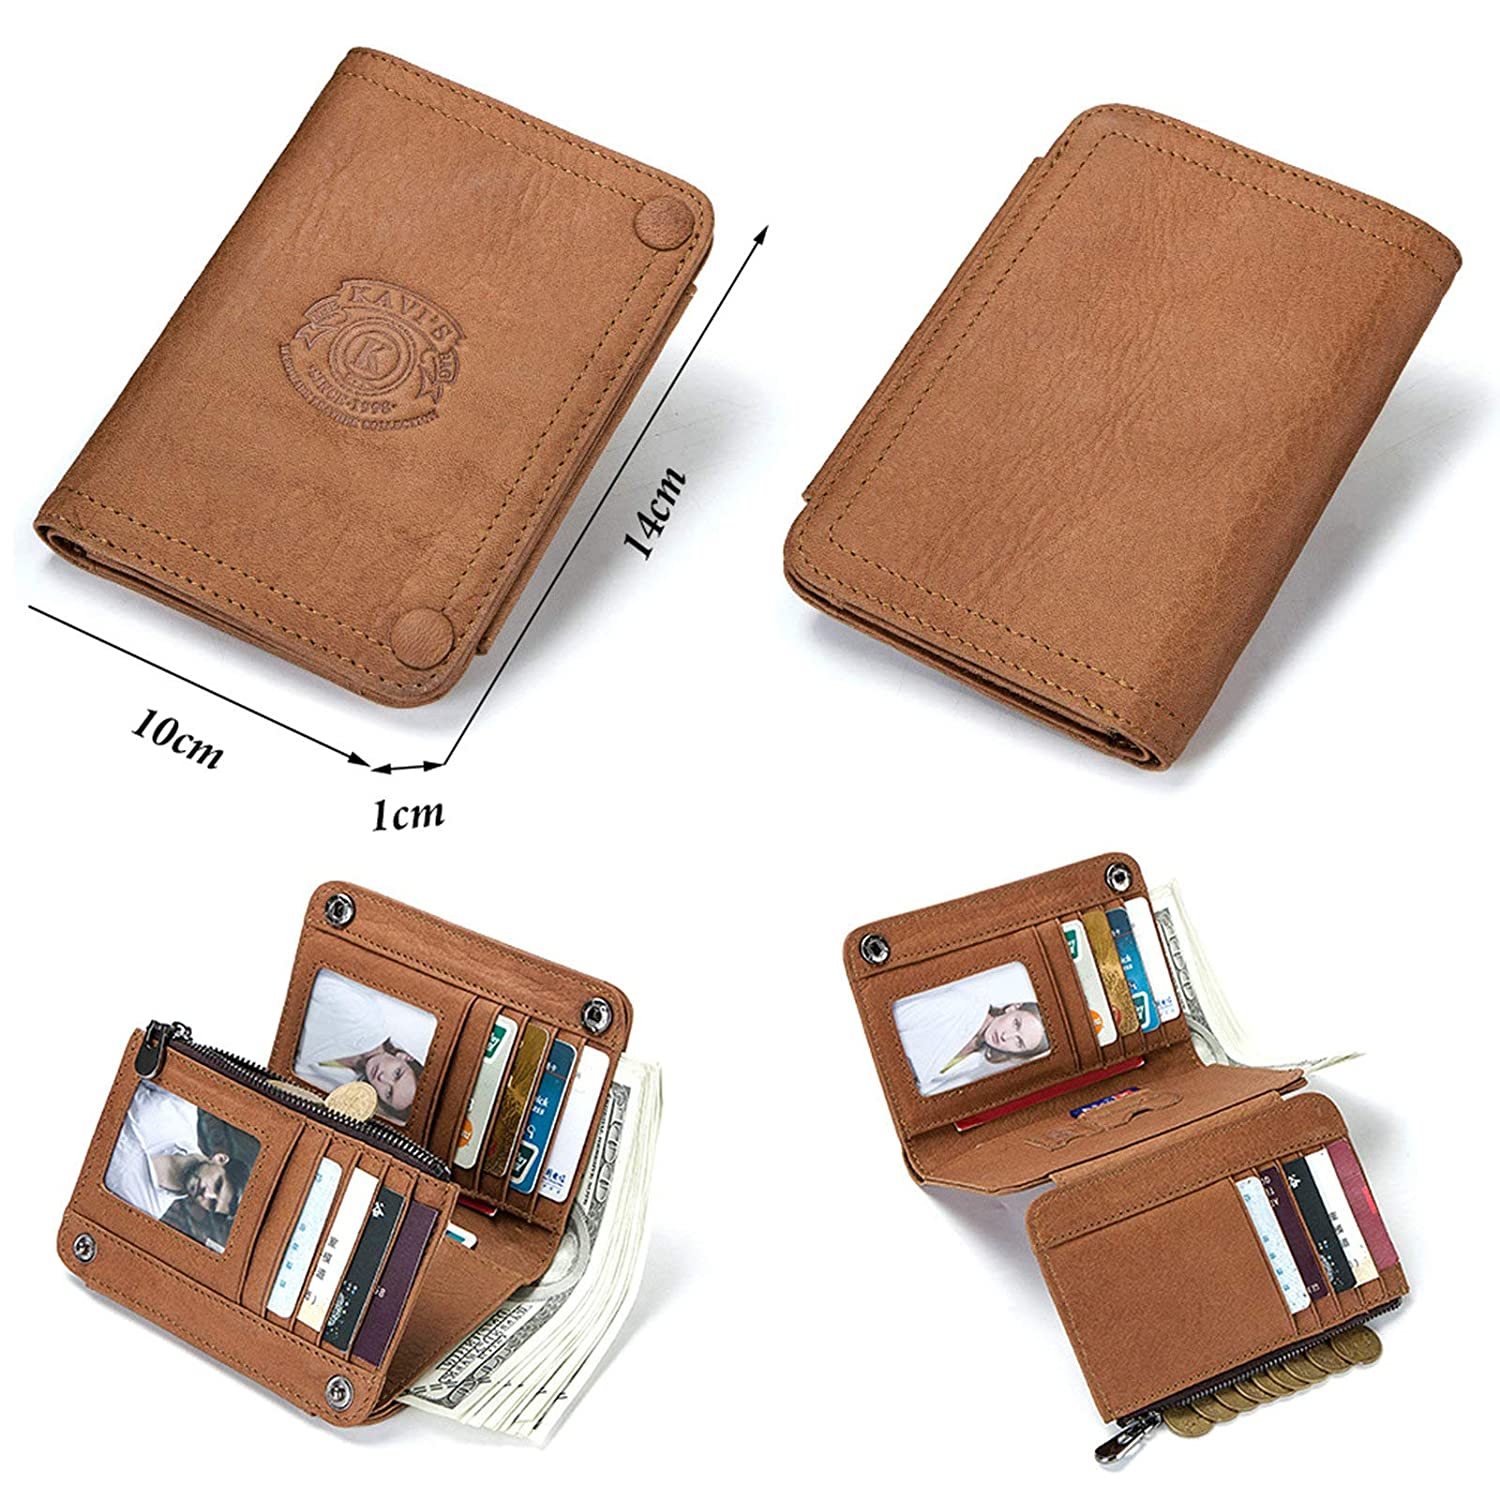 EoCot Mens Cowhide Leather Multifunctional Wallets Trifold Wallet Coin Purse with 2 ID Window BrownWallet